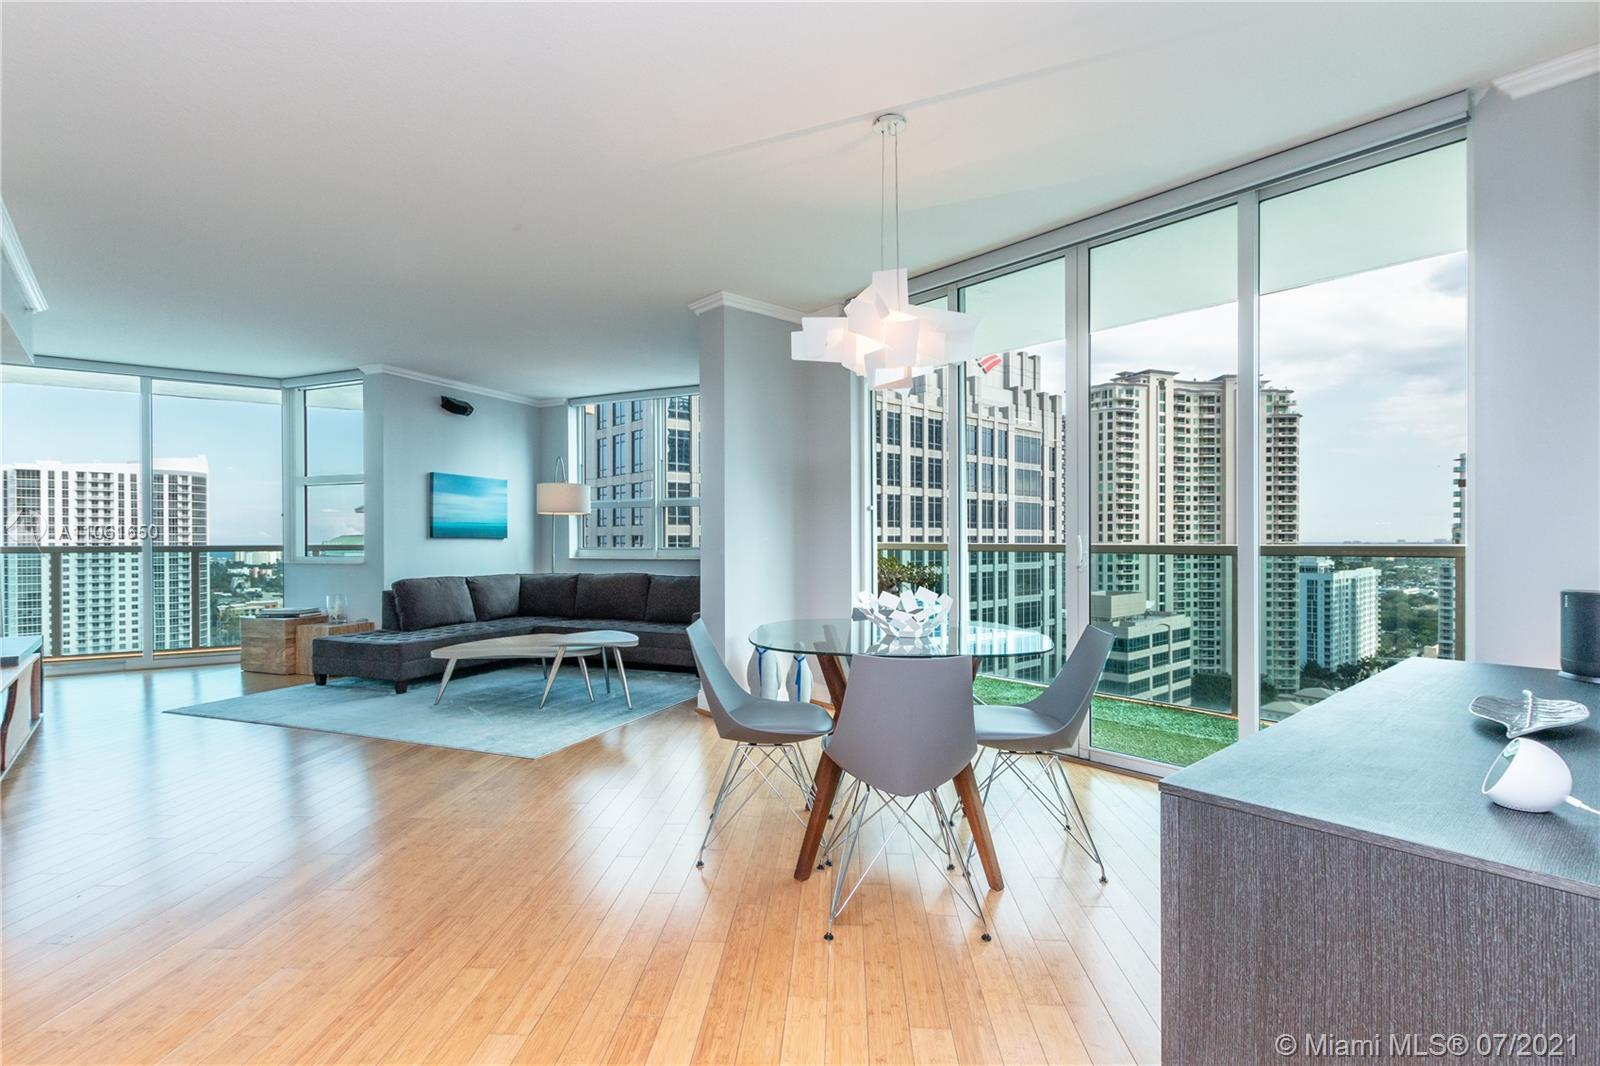 The best Las Olas has to offer. This beautiful 2 bedroom 2 bath is in impeccable condition with two